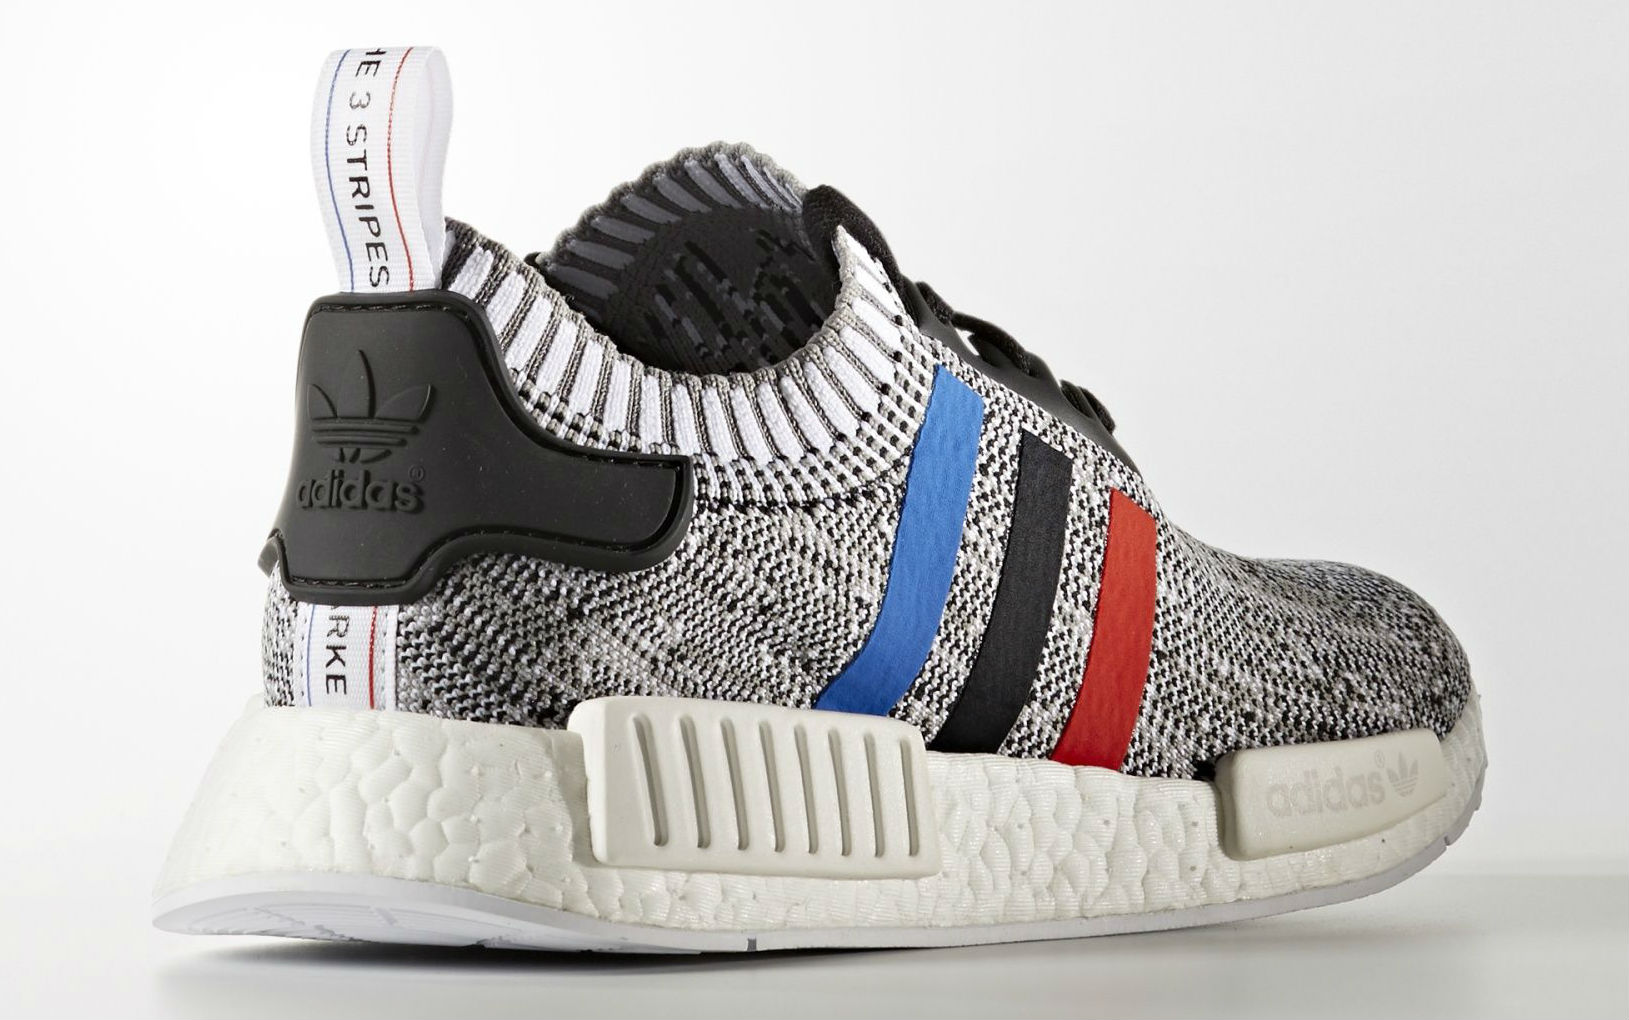 Cheap Adidas NMD R1 BB3123 Bedwin & The Heartbreakers SZ 7.5